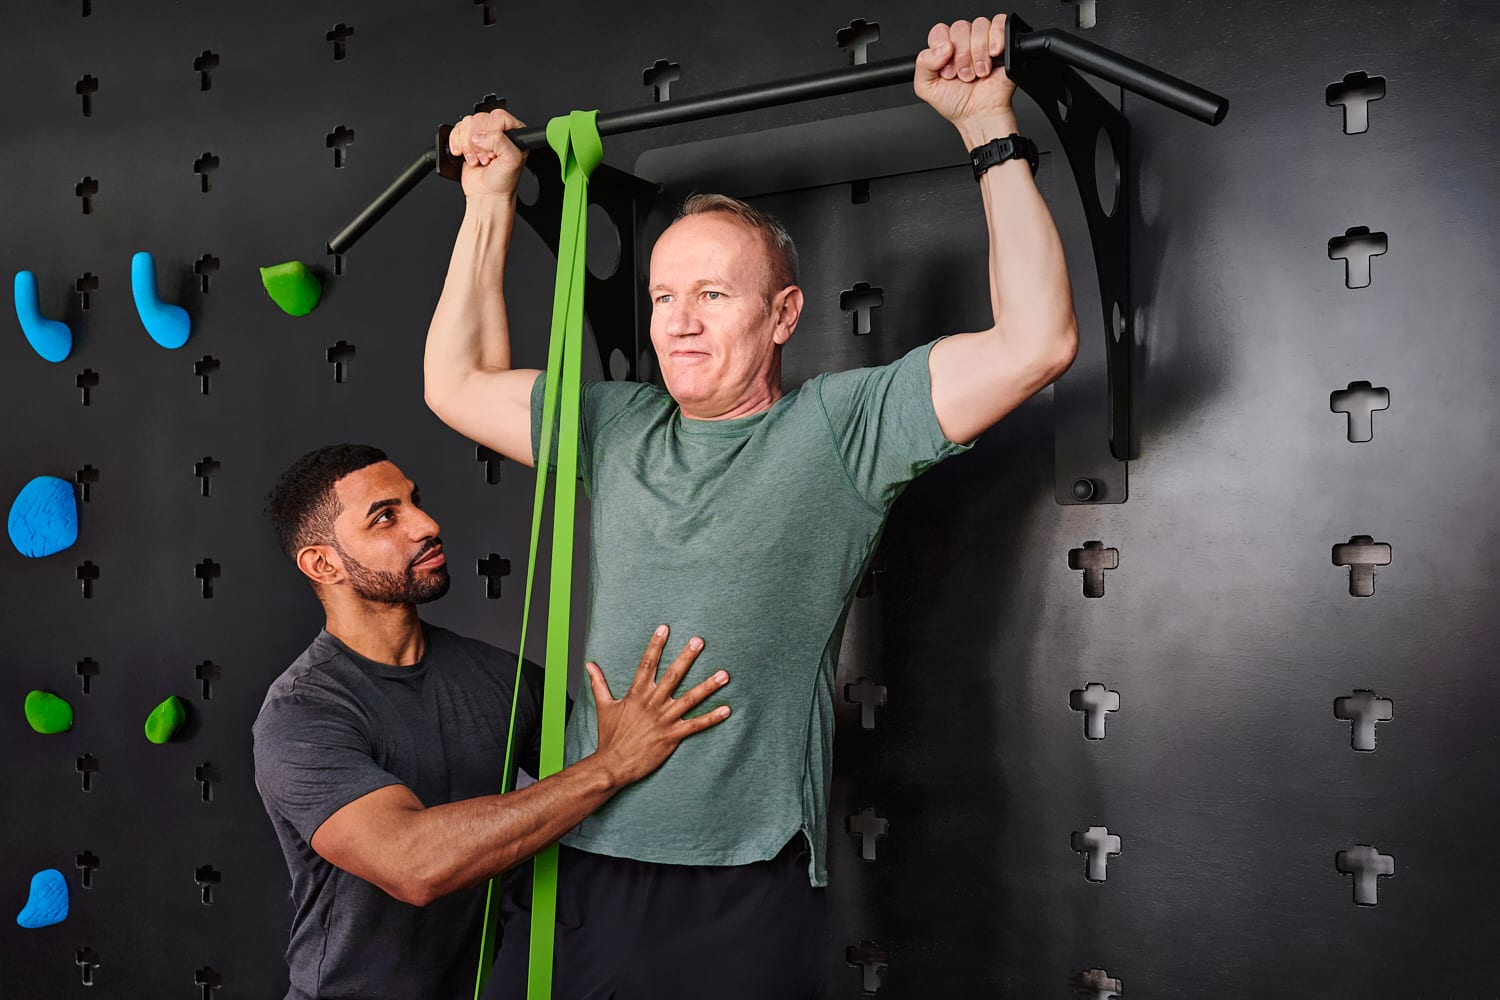 LINDEBERGS_LOW_RES_Training_photographer_gunnar_menzel_3265